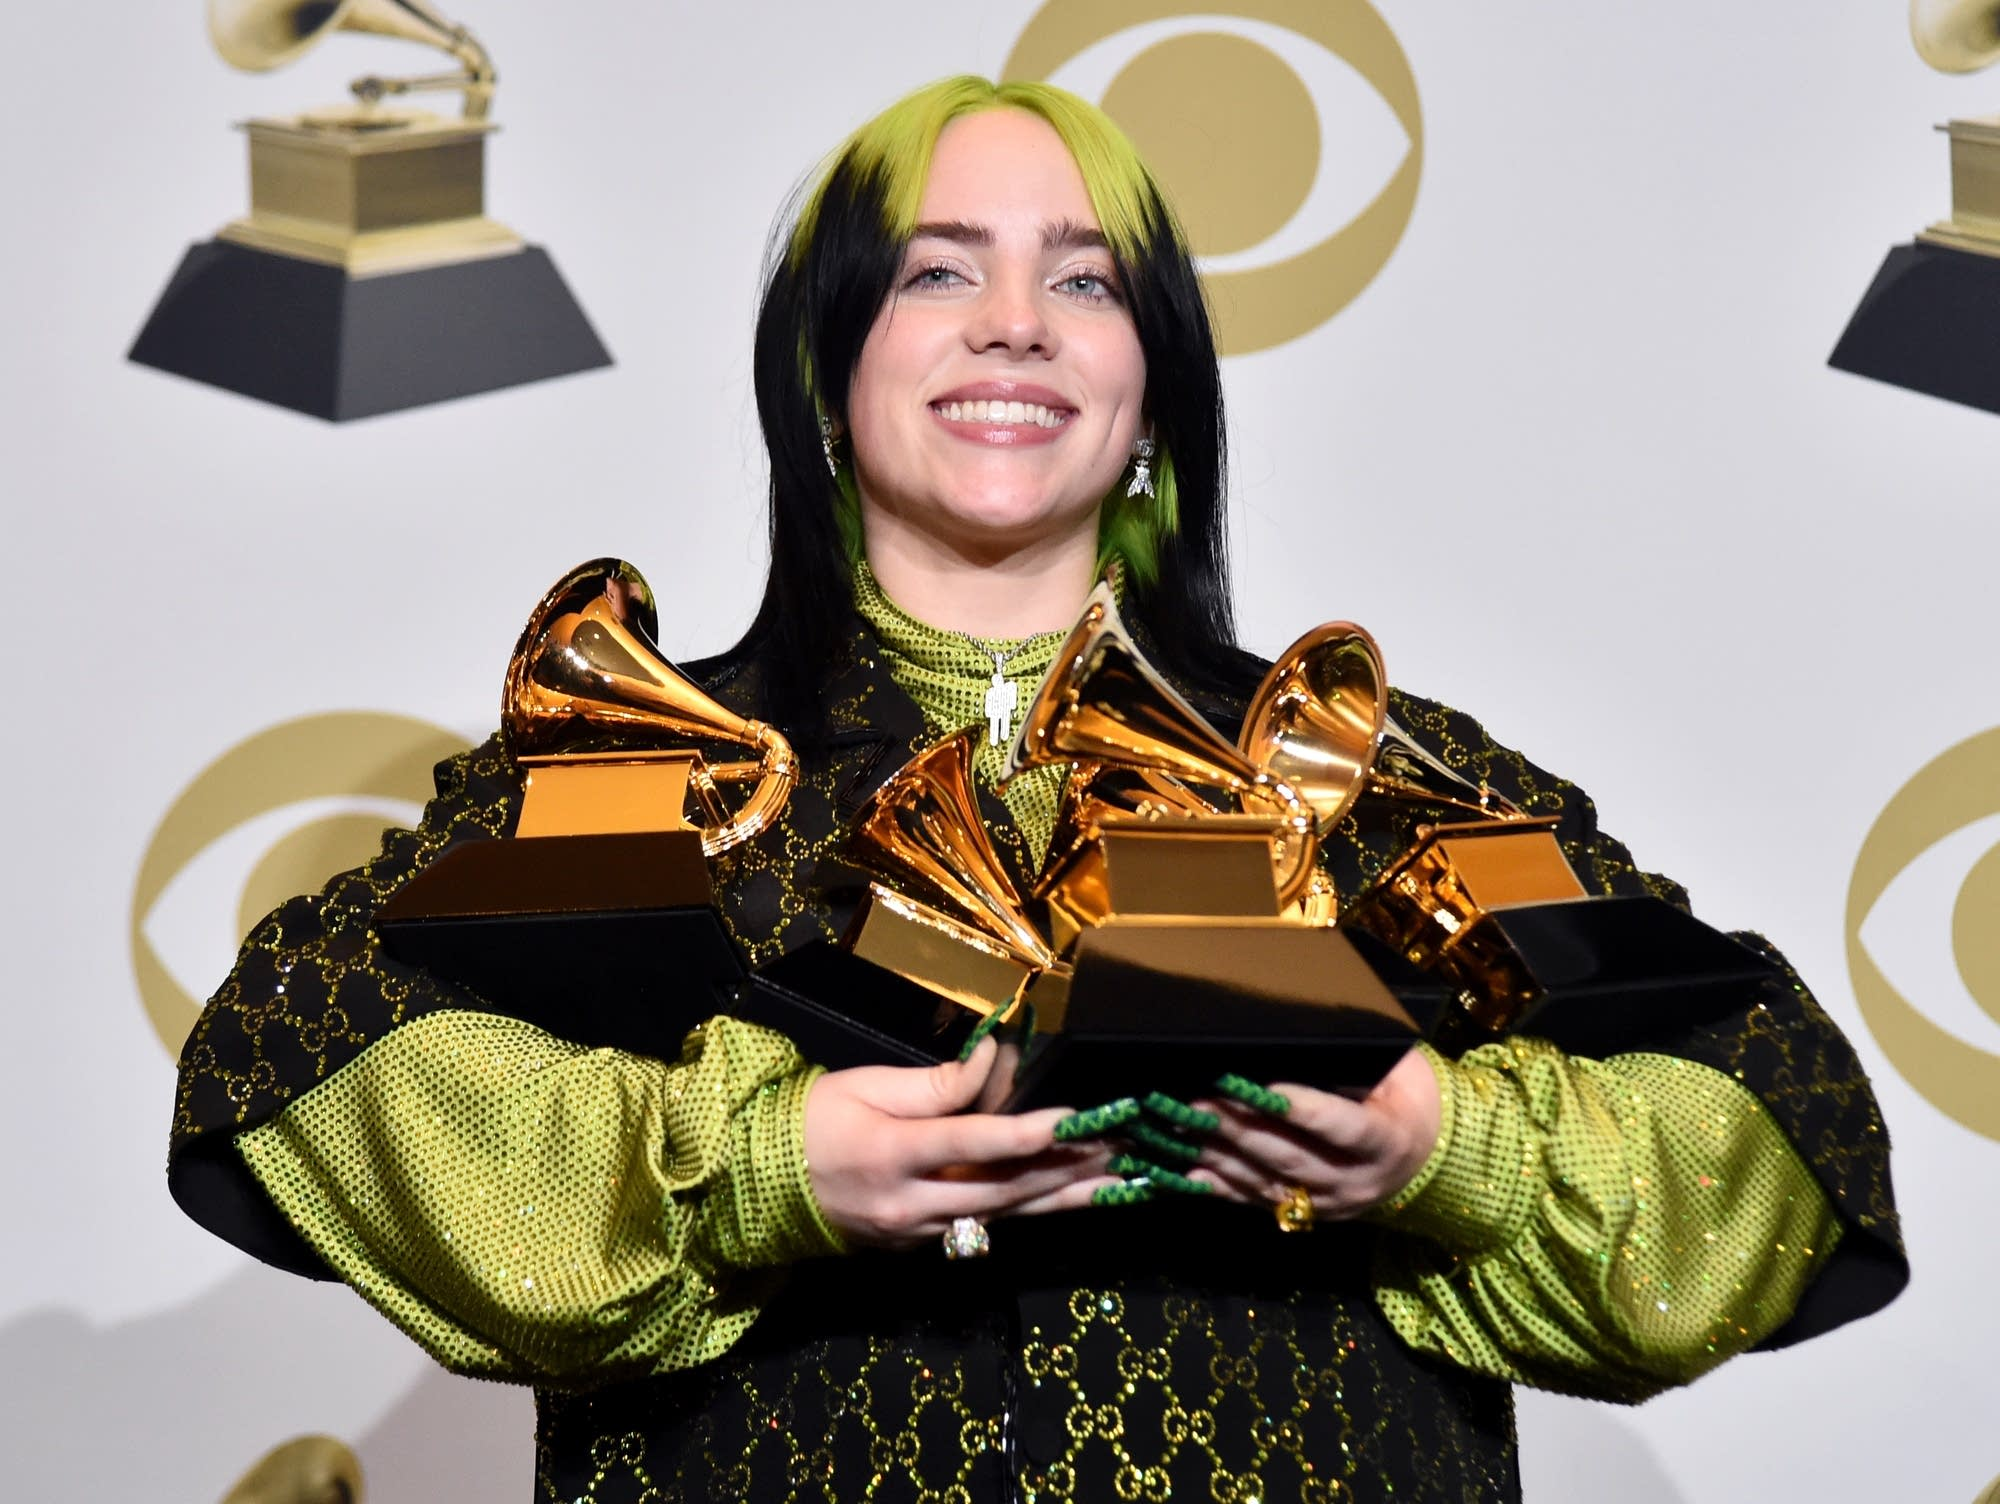 Billie Eilish with some of her awards at the 62nd Annual GRAMMYs.